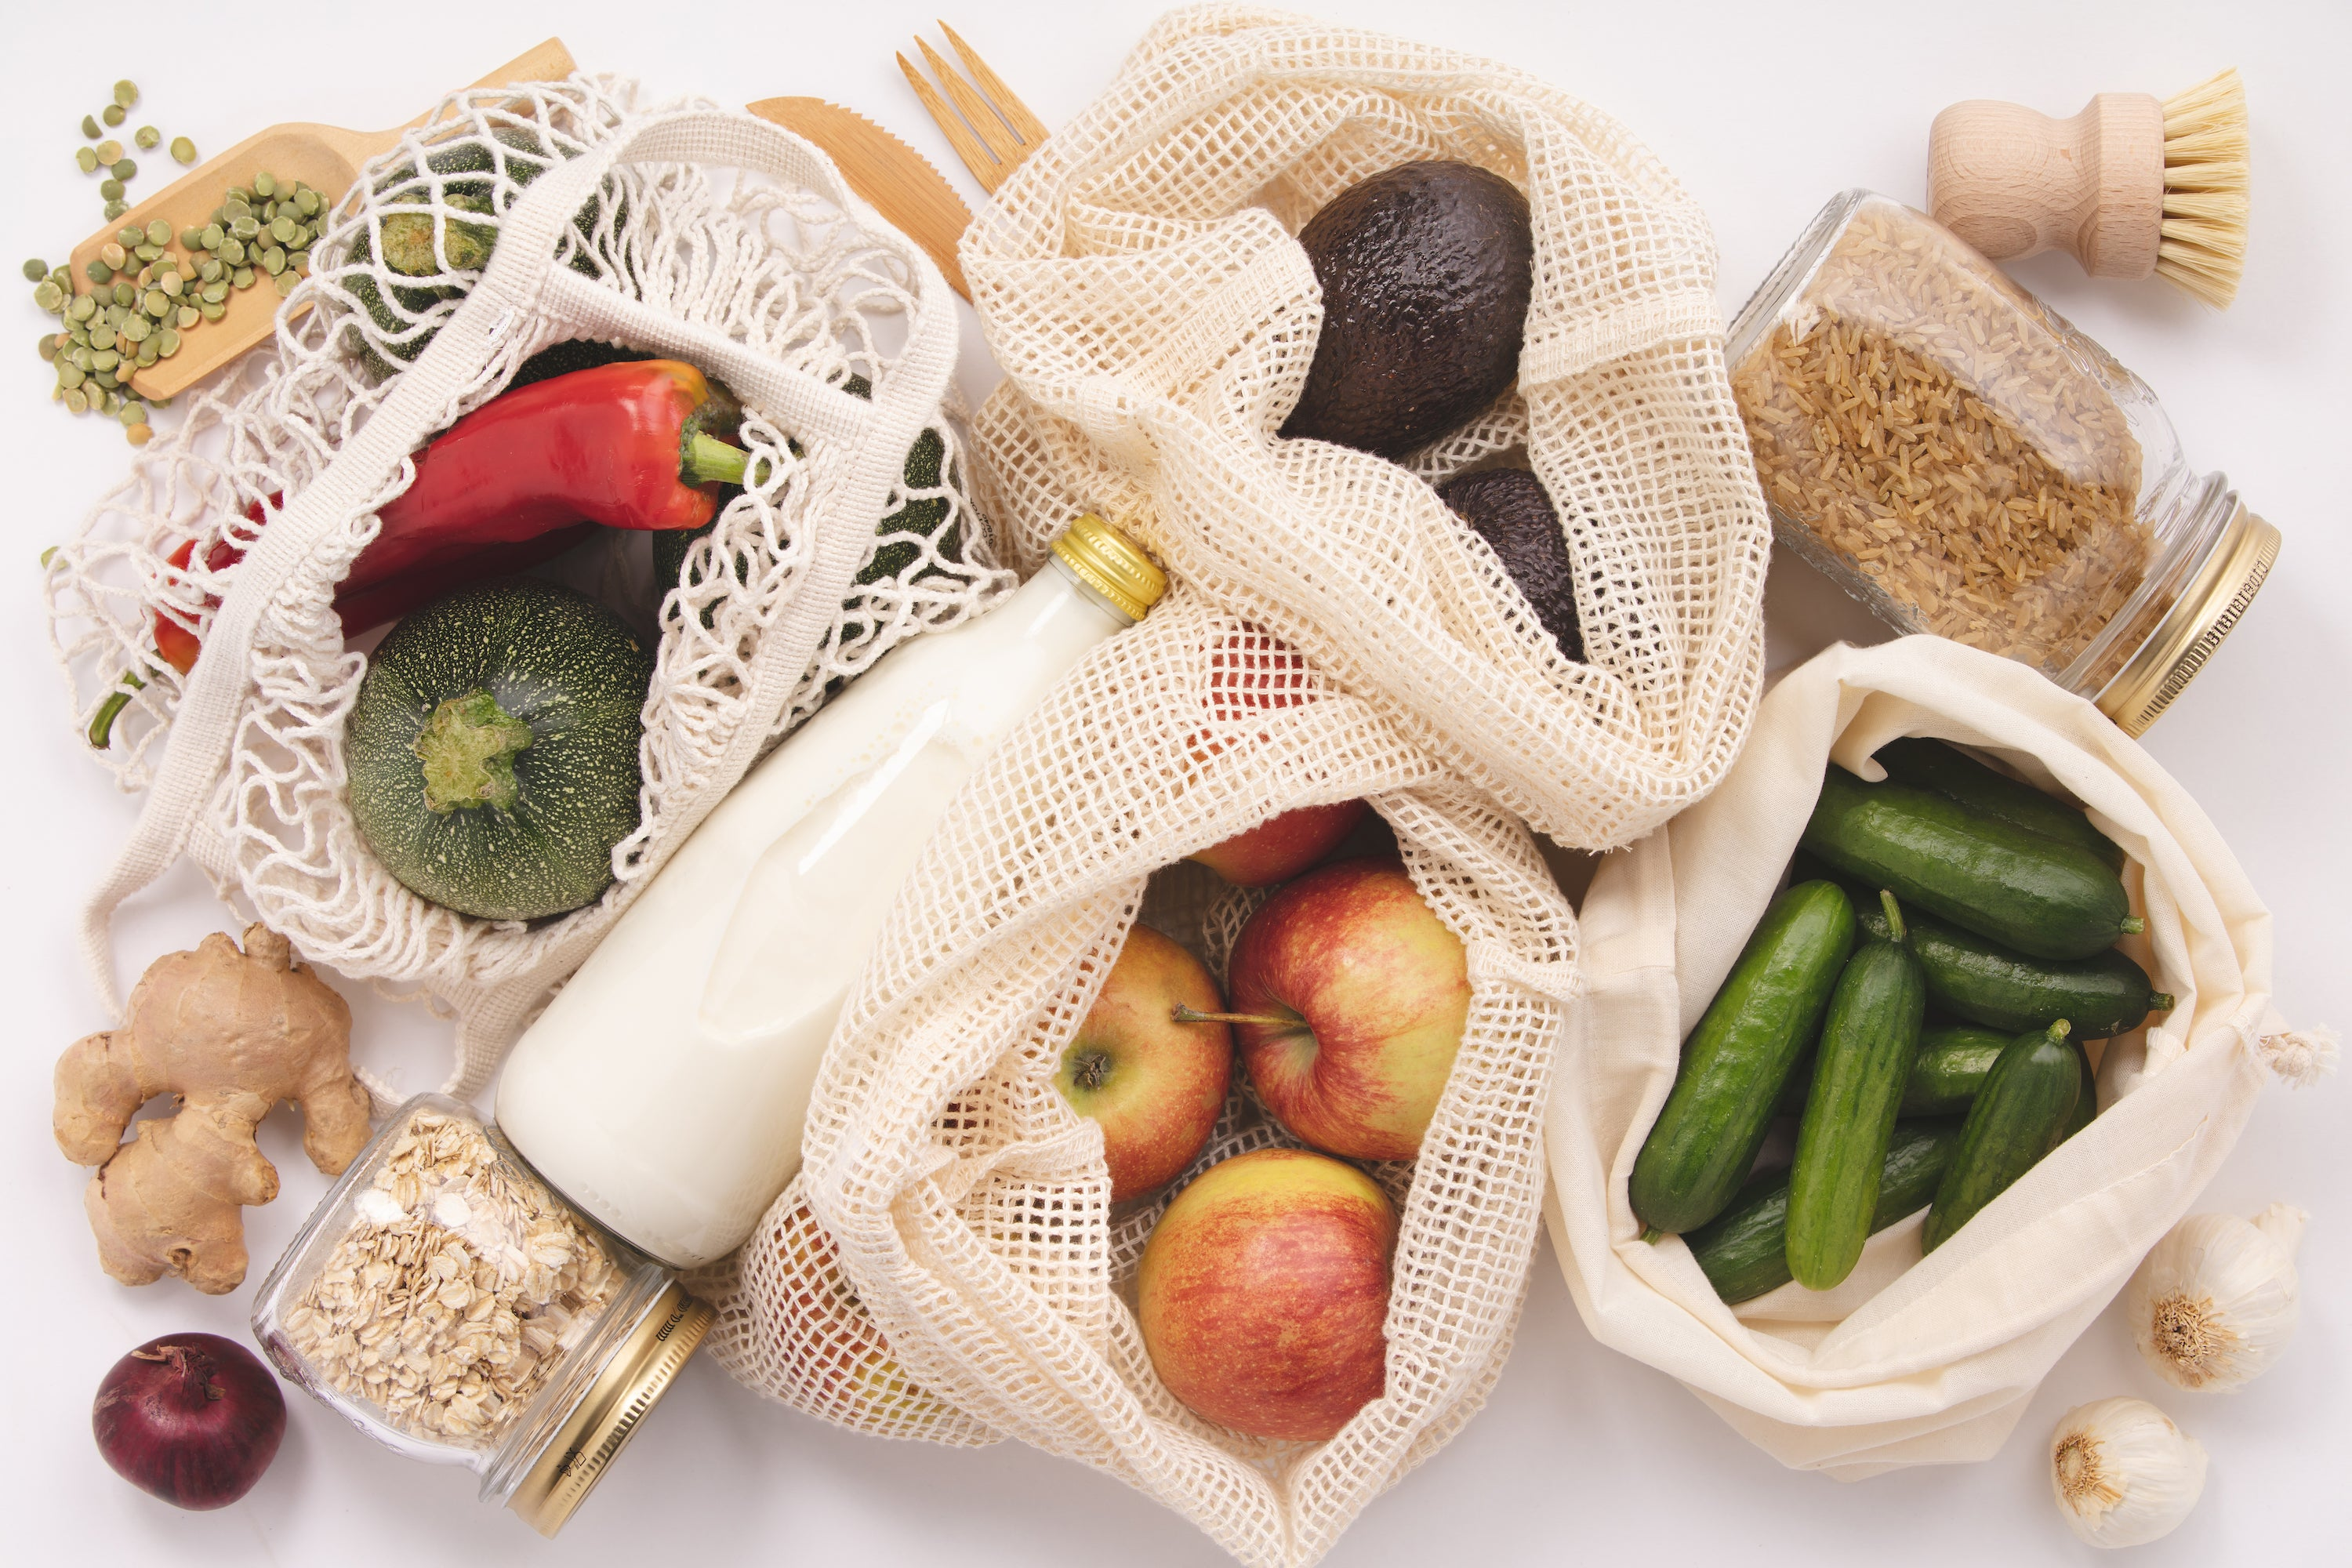 Vegetables in Bags, What Produce is in Season in Autumn?